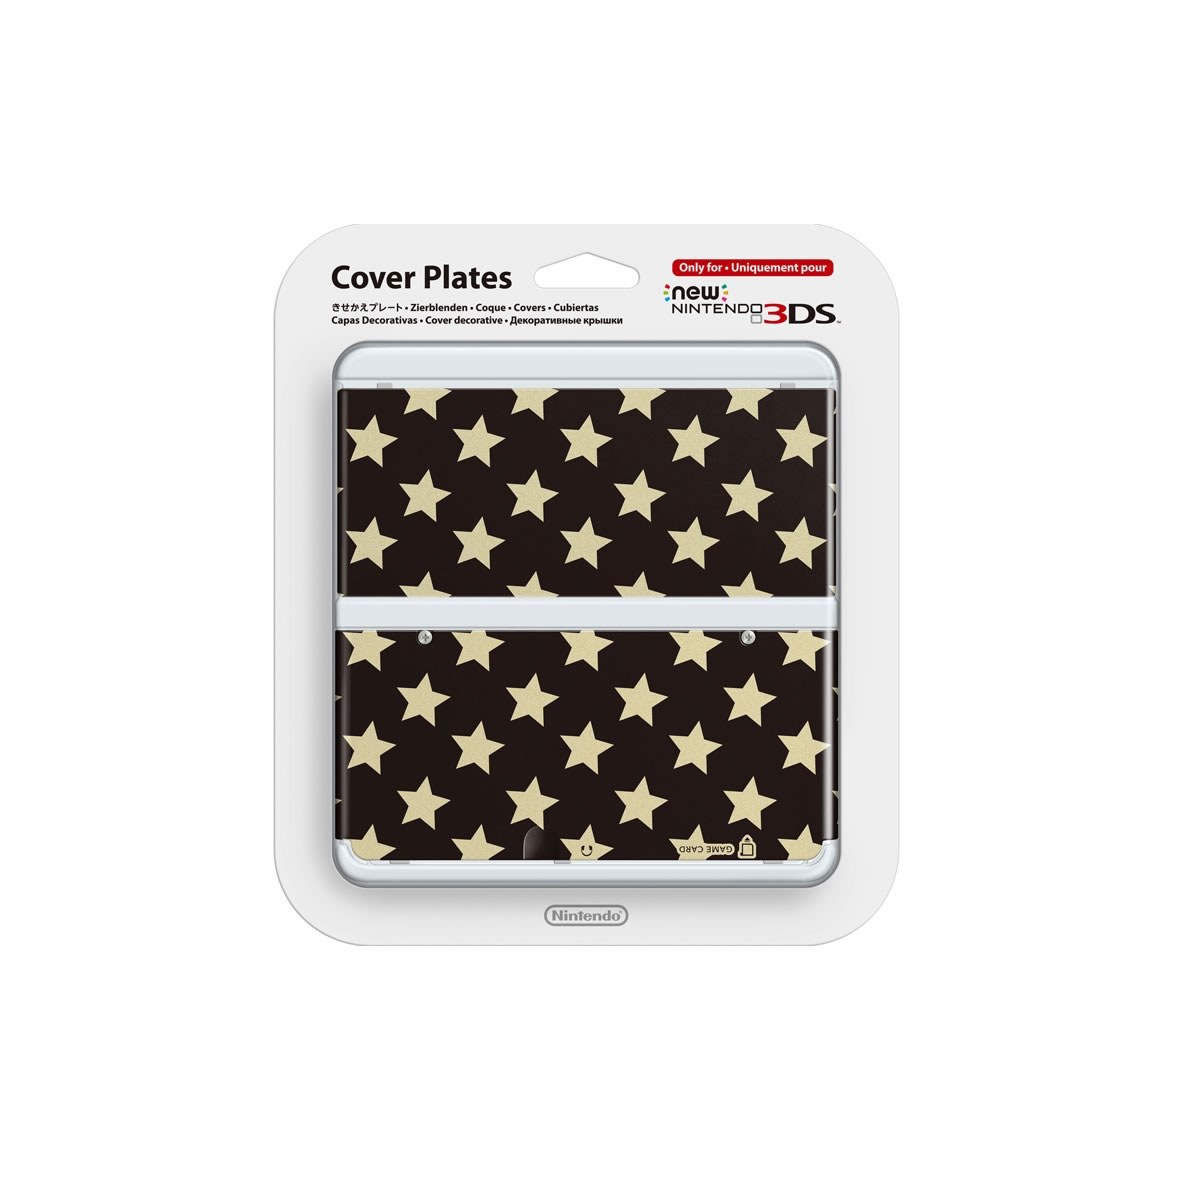 NEW NINTENDO 3DS COVERPLATE 016 Stars (New 3DS)